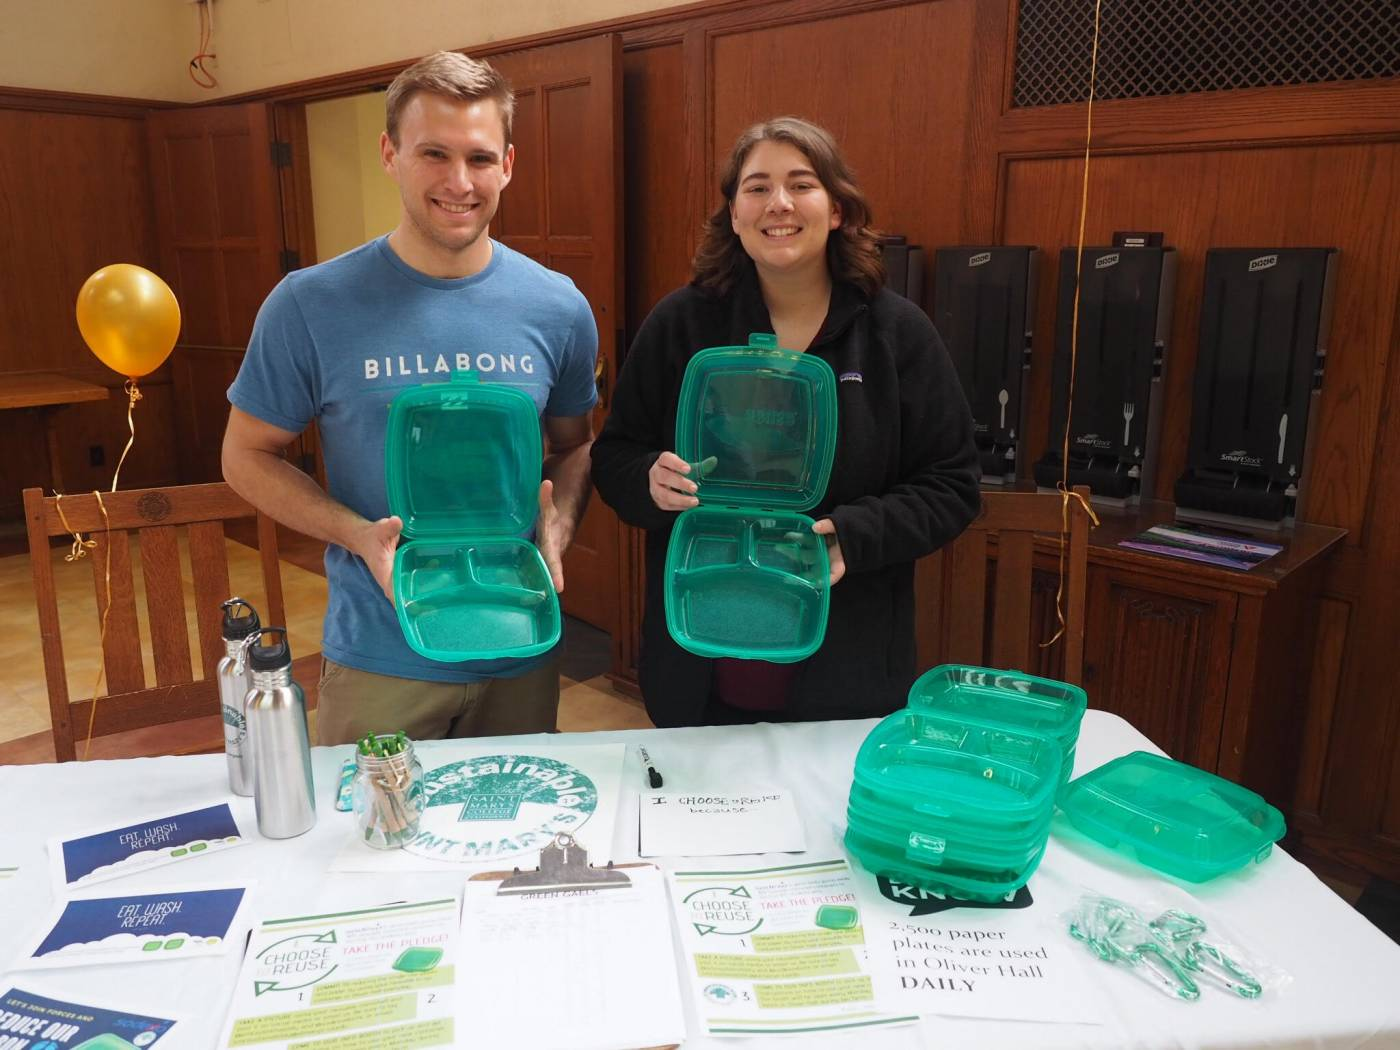 Sustainability staff promoting the Choose to Reuse containers at Oliver Hall.